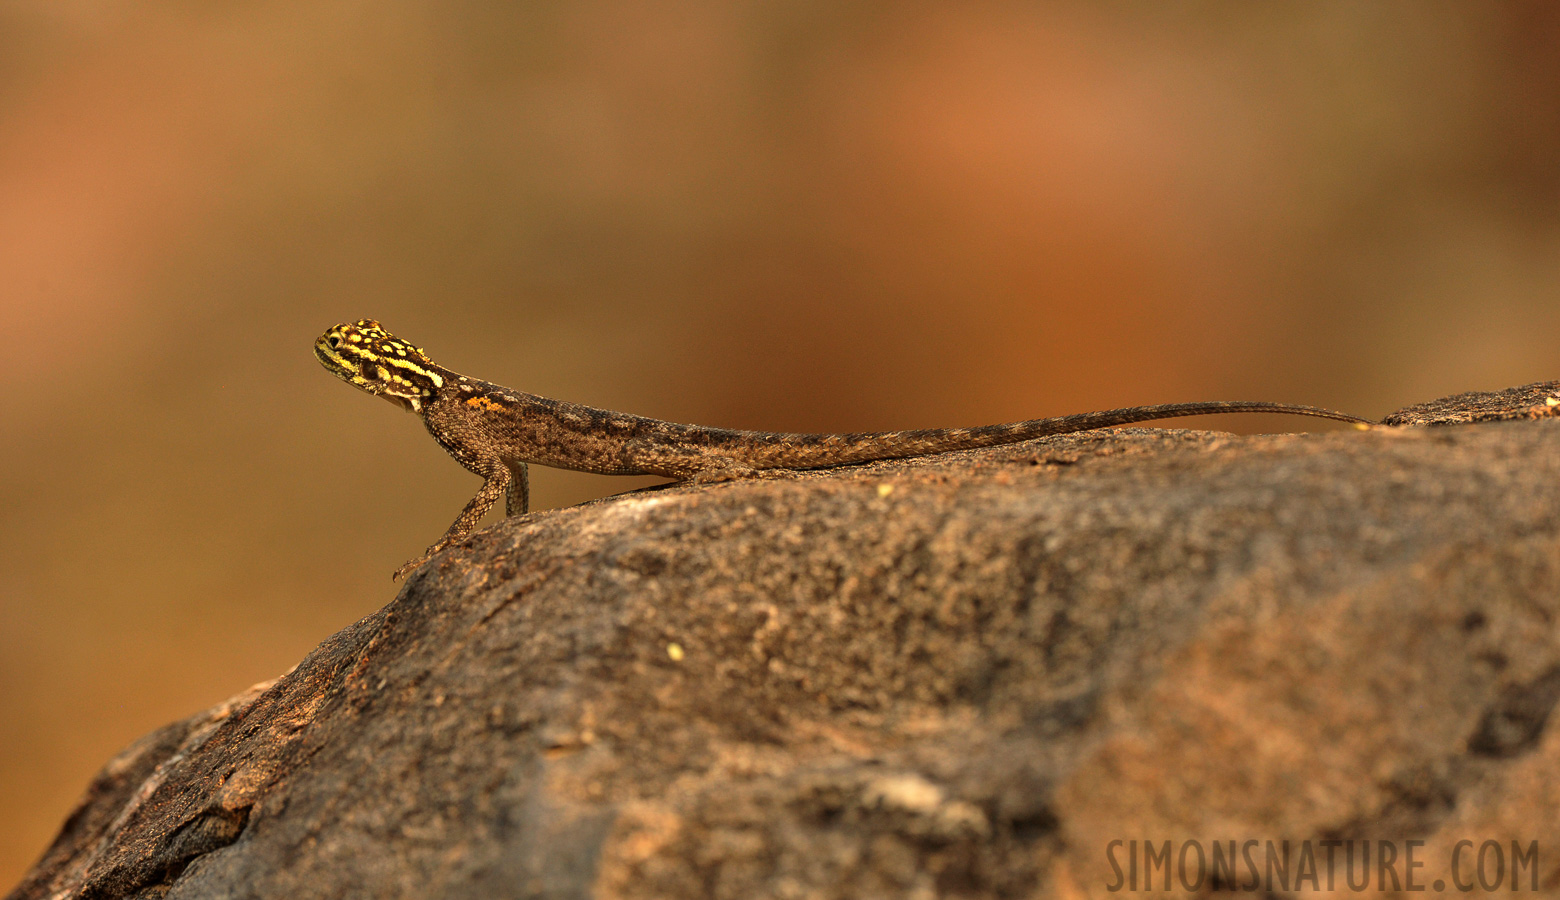 Agama planiceps [400 mm, 1/320 sec at f / 8.0, ISO 1600]